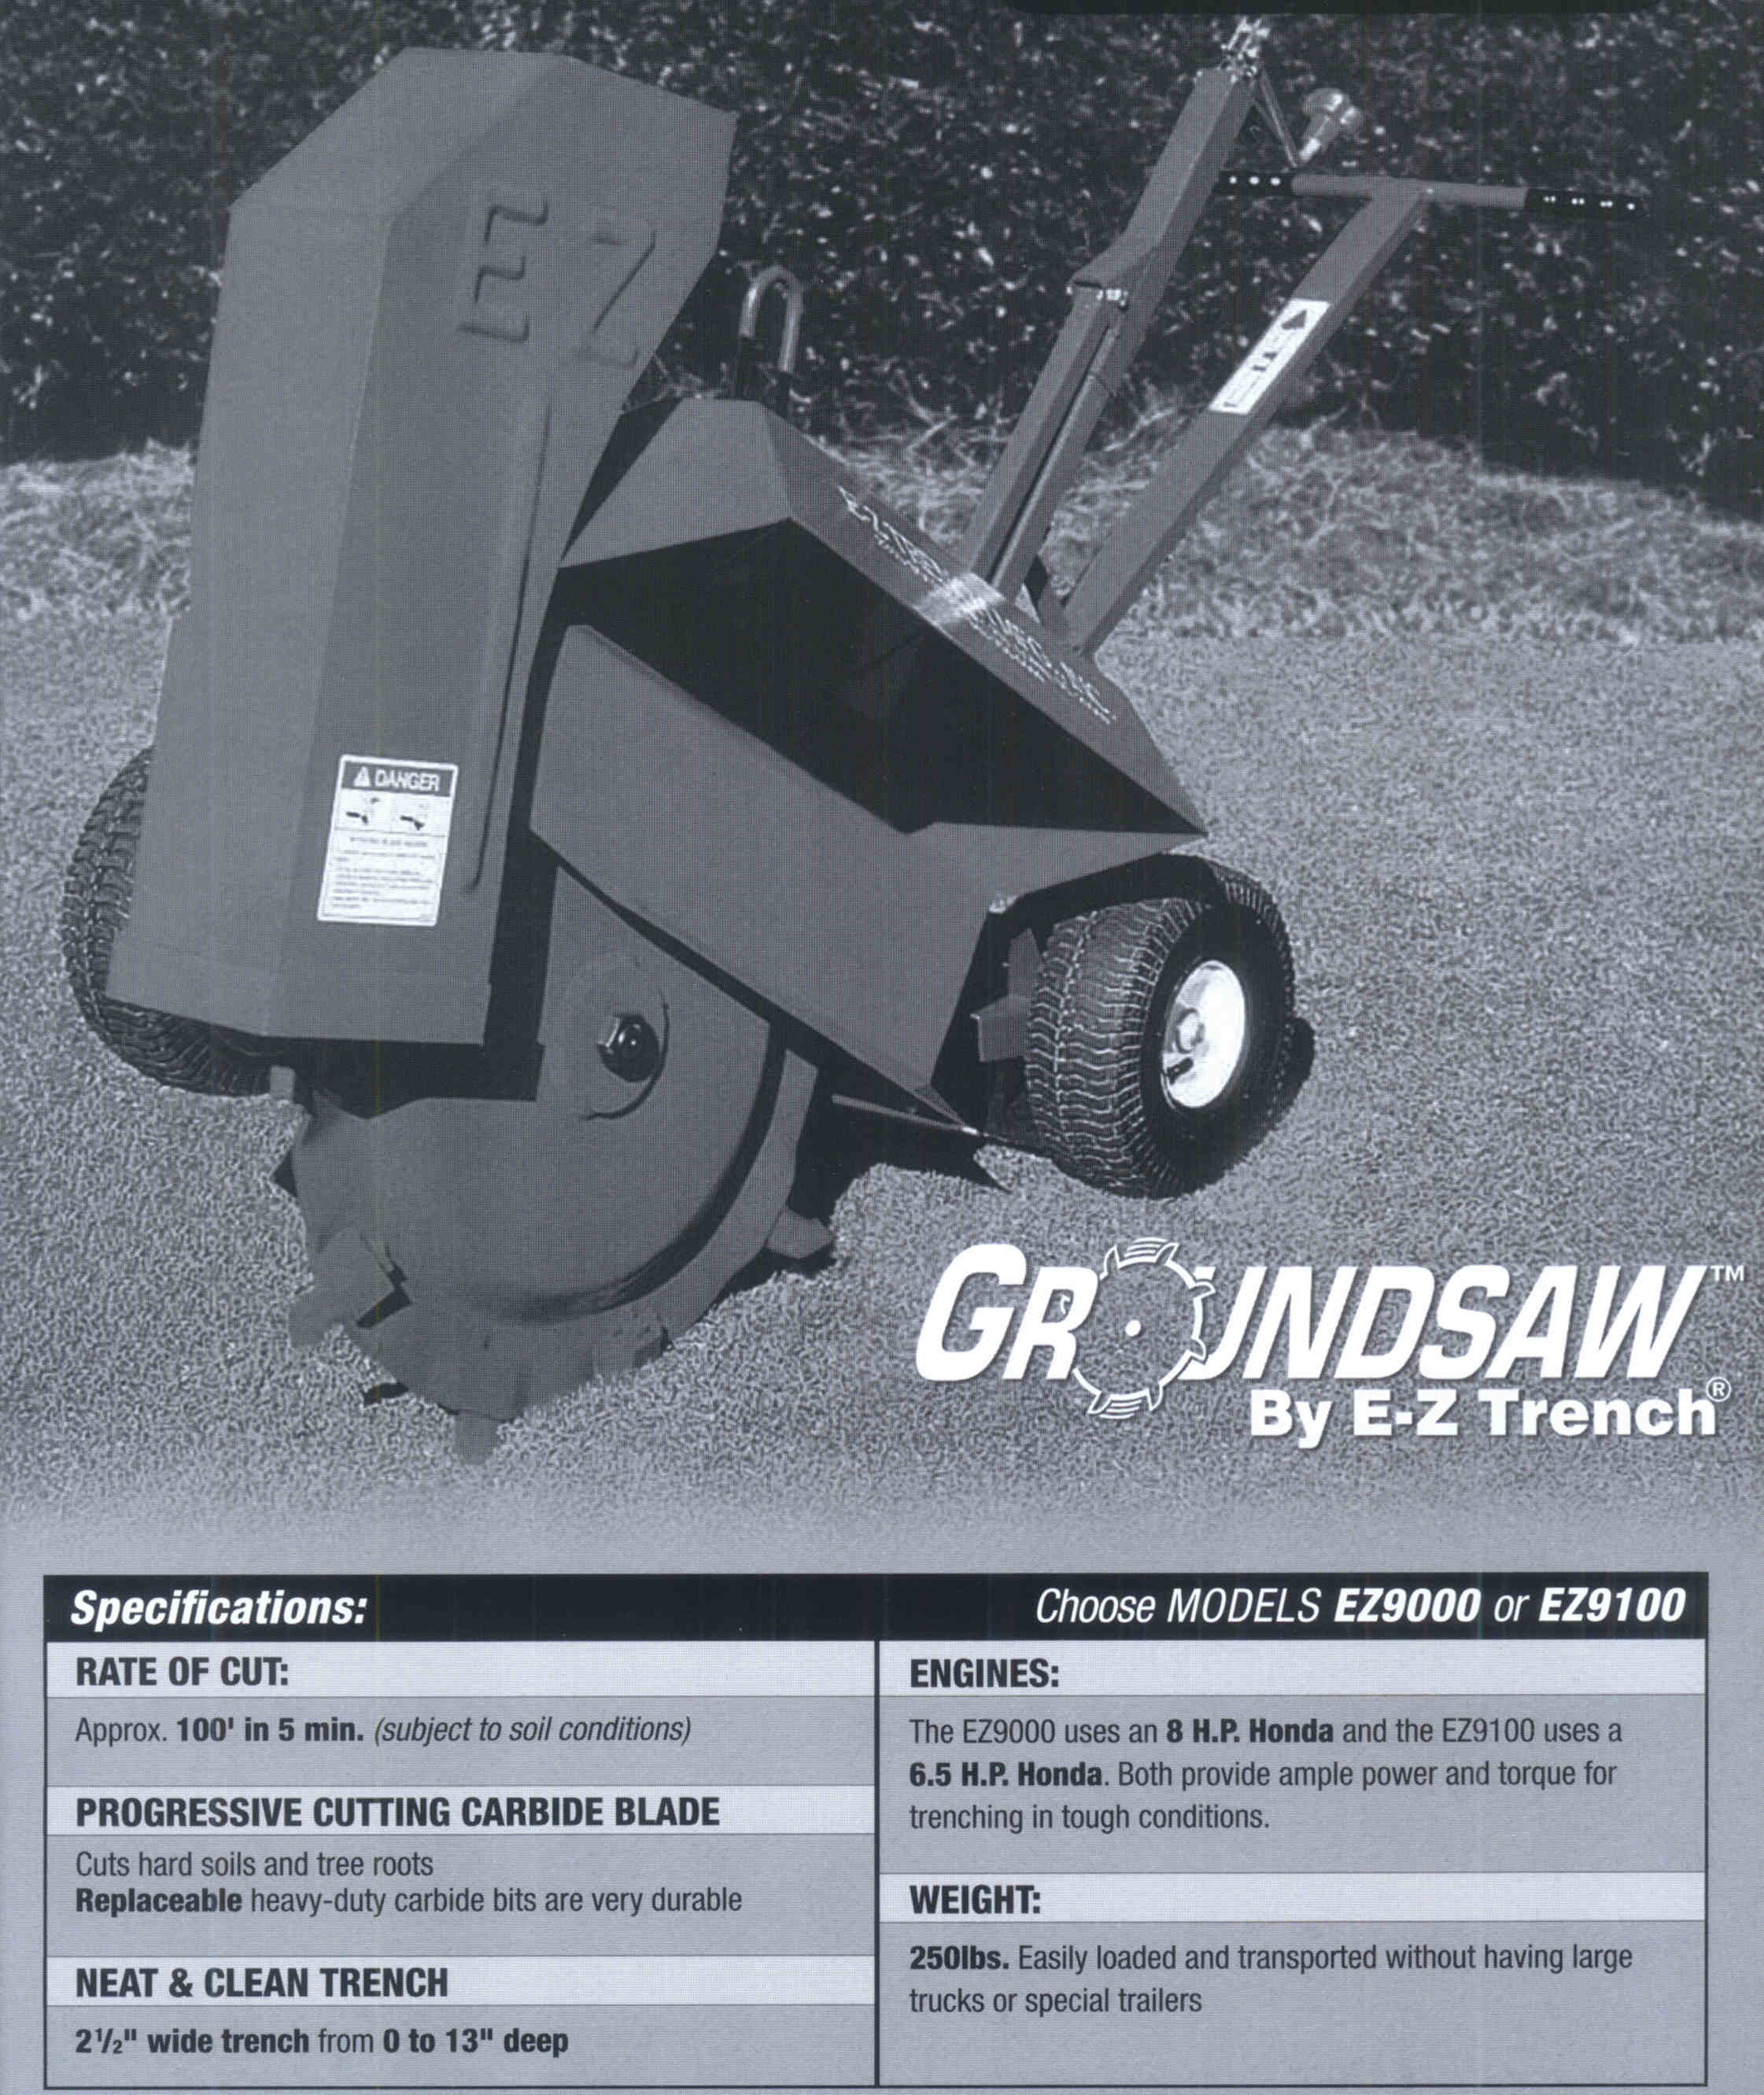 Specifications For Groundsaw Trenching Machine